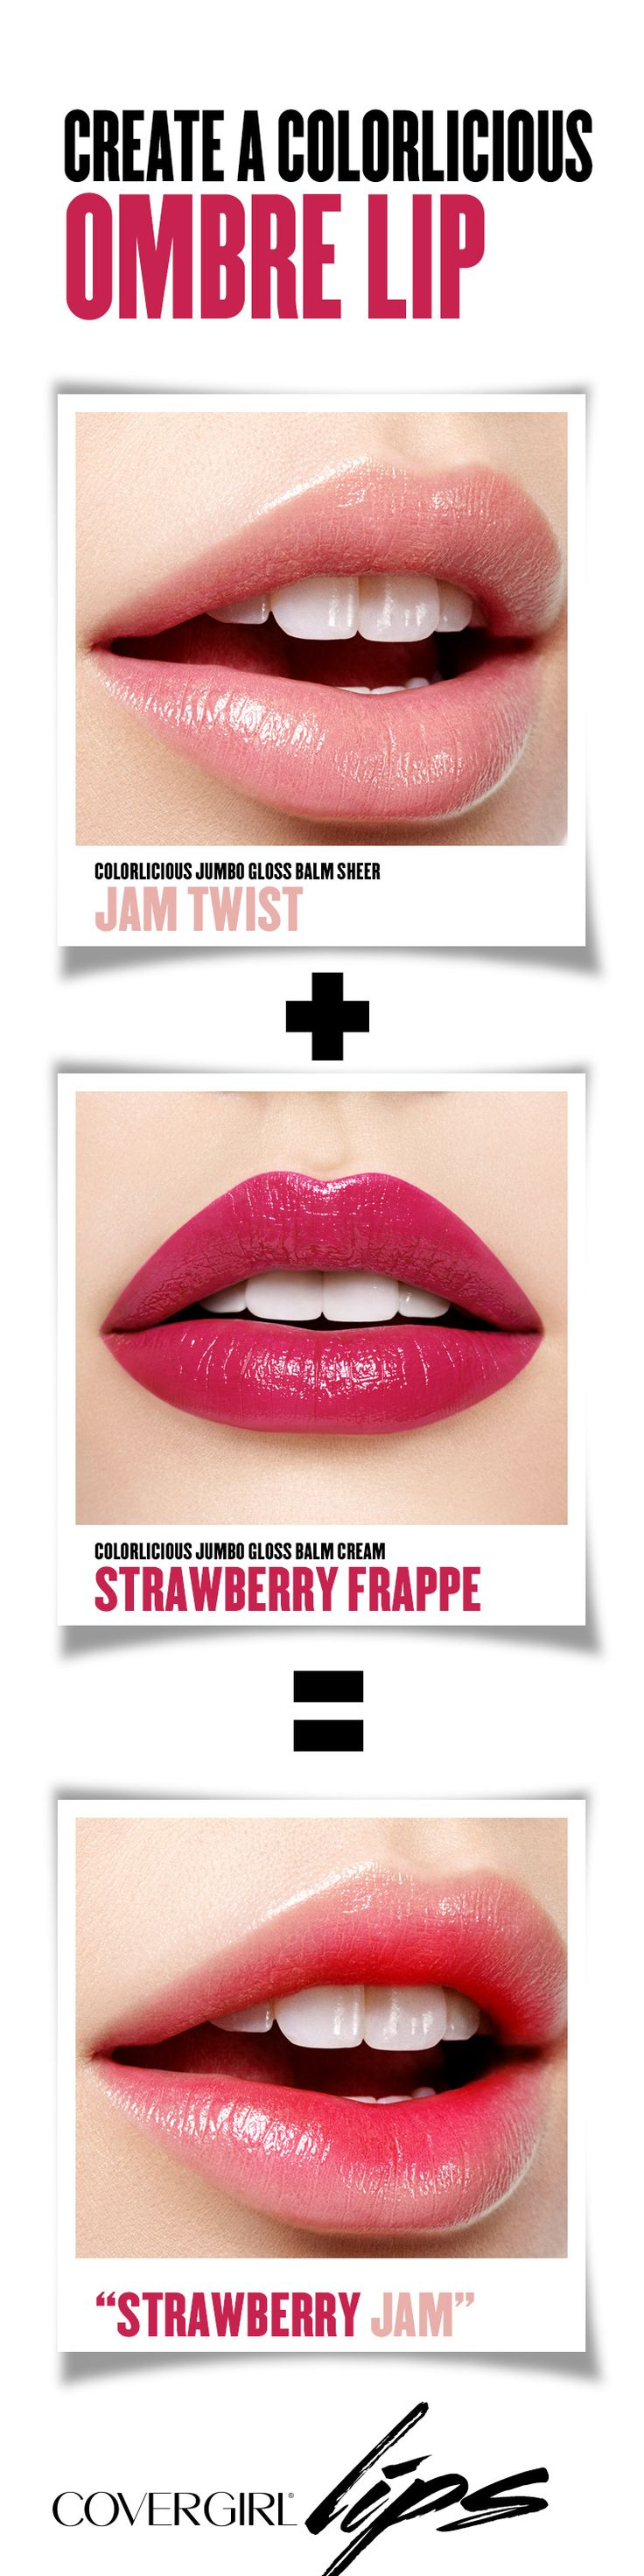 Makeup tip: First, apply COVERGIRL Jumbo Gloss Balm Sheer in Jam Twist for a hint of tint. Next, dab Jumbo Gloss Balm Cream in Strawberry Frappe on to the inner parts of your lips to create this awesome DIY ombre lip look. Try this look for your next holiday party!